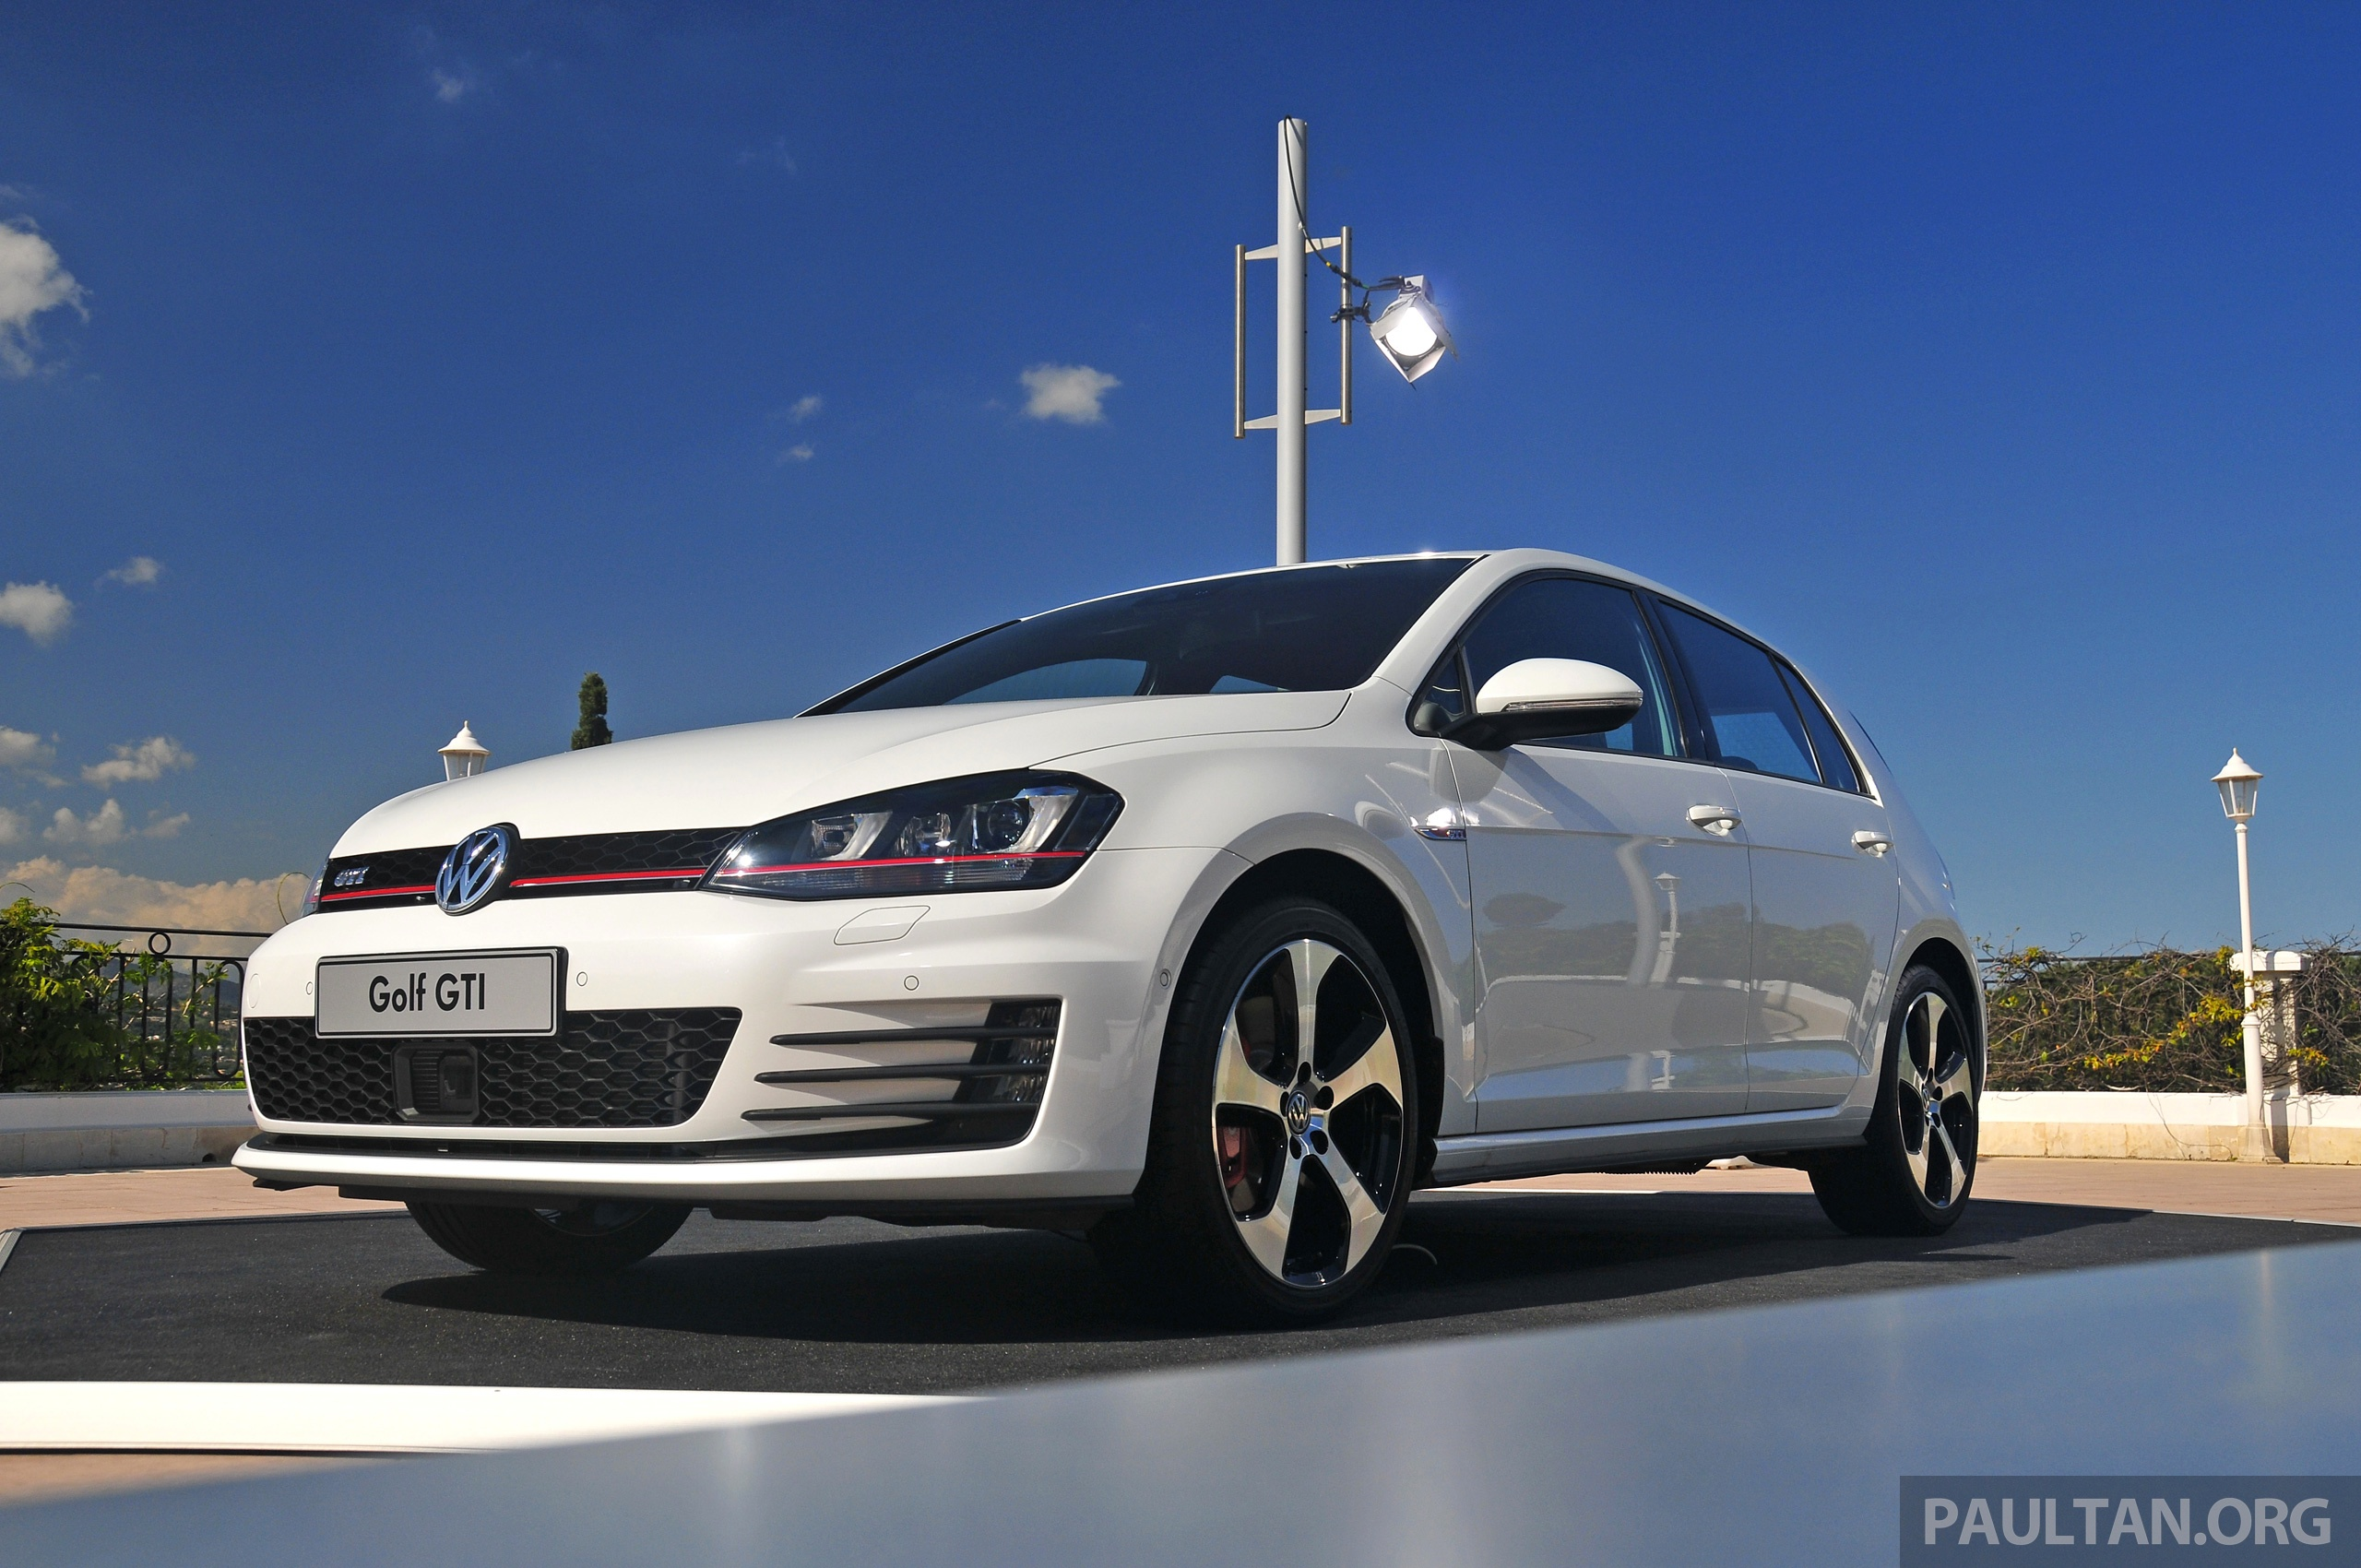 driven new 220 ps volkswagen golf gti mk7 tested image 189473. Black Bedroom Furniture Sets. Home Design Ideas